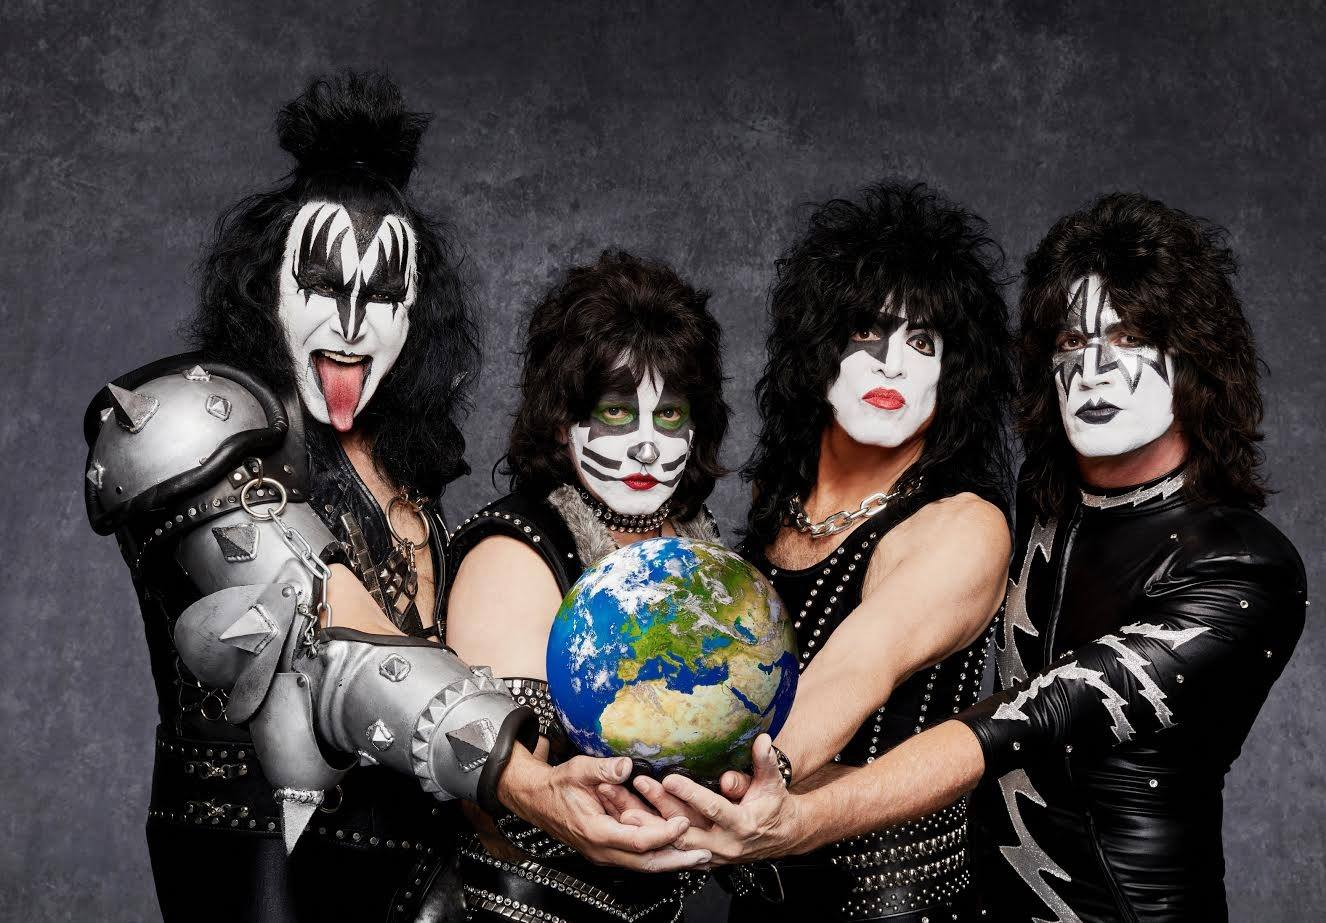 KISS FAREWELL TOUR for 2018-19?